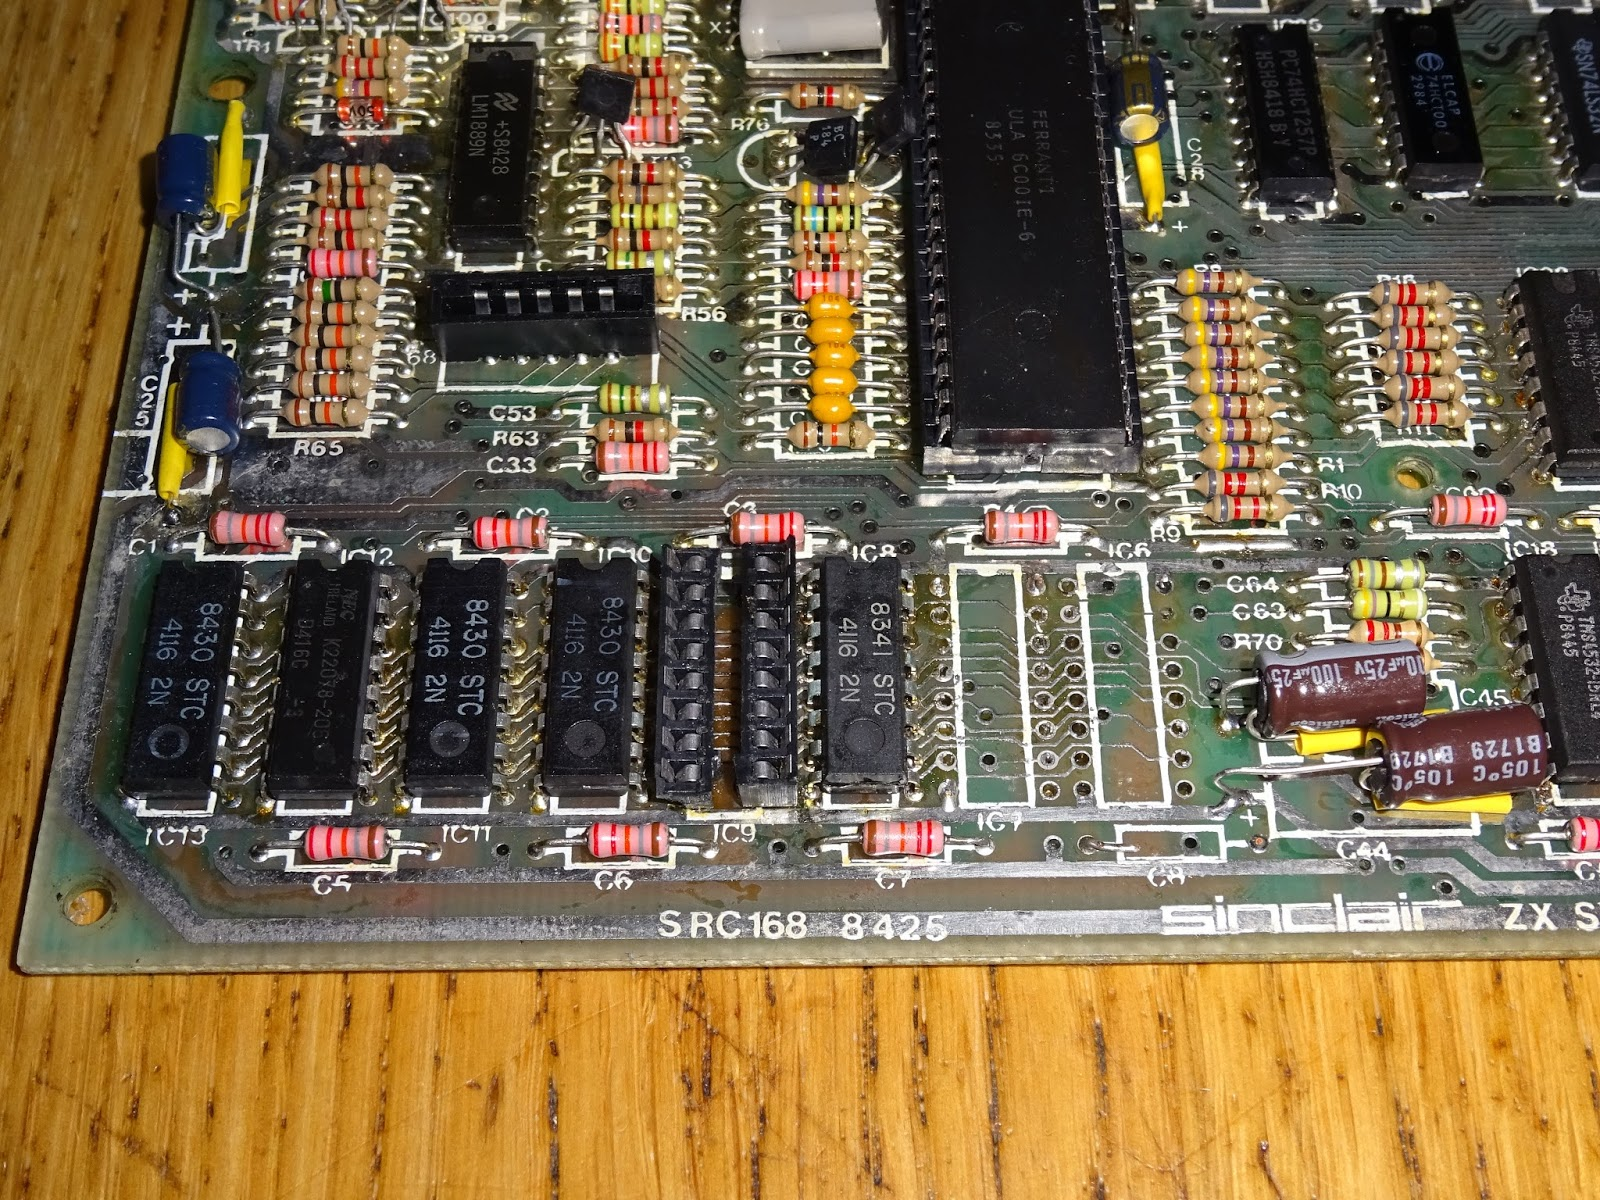 Tynemouth Software April 2018 Plated Through Hole Circuit Board Repair Kit This Other Is One I Have Been Putting Off For A While Some Tracks Damaged And Plating Removed It Has Recapped With